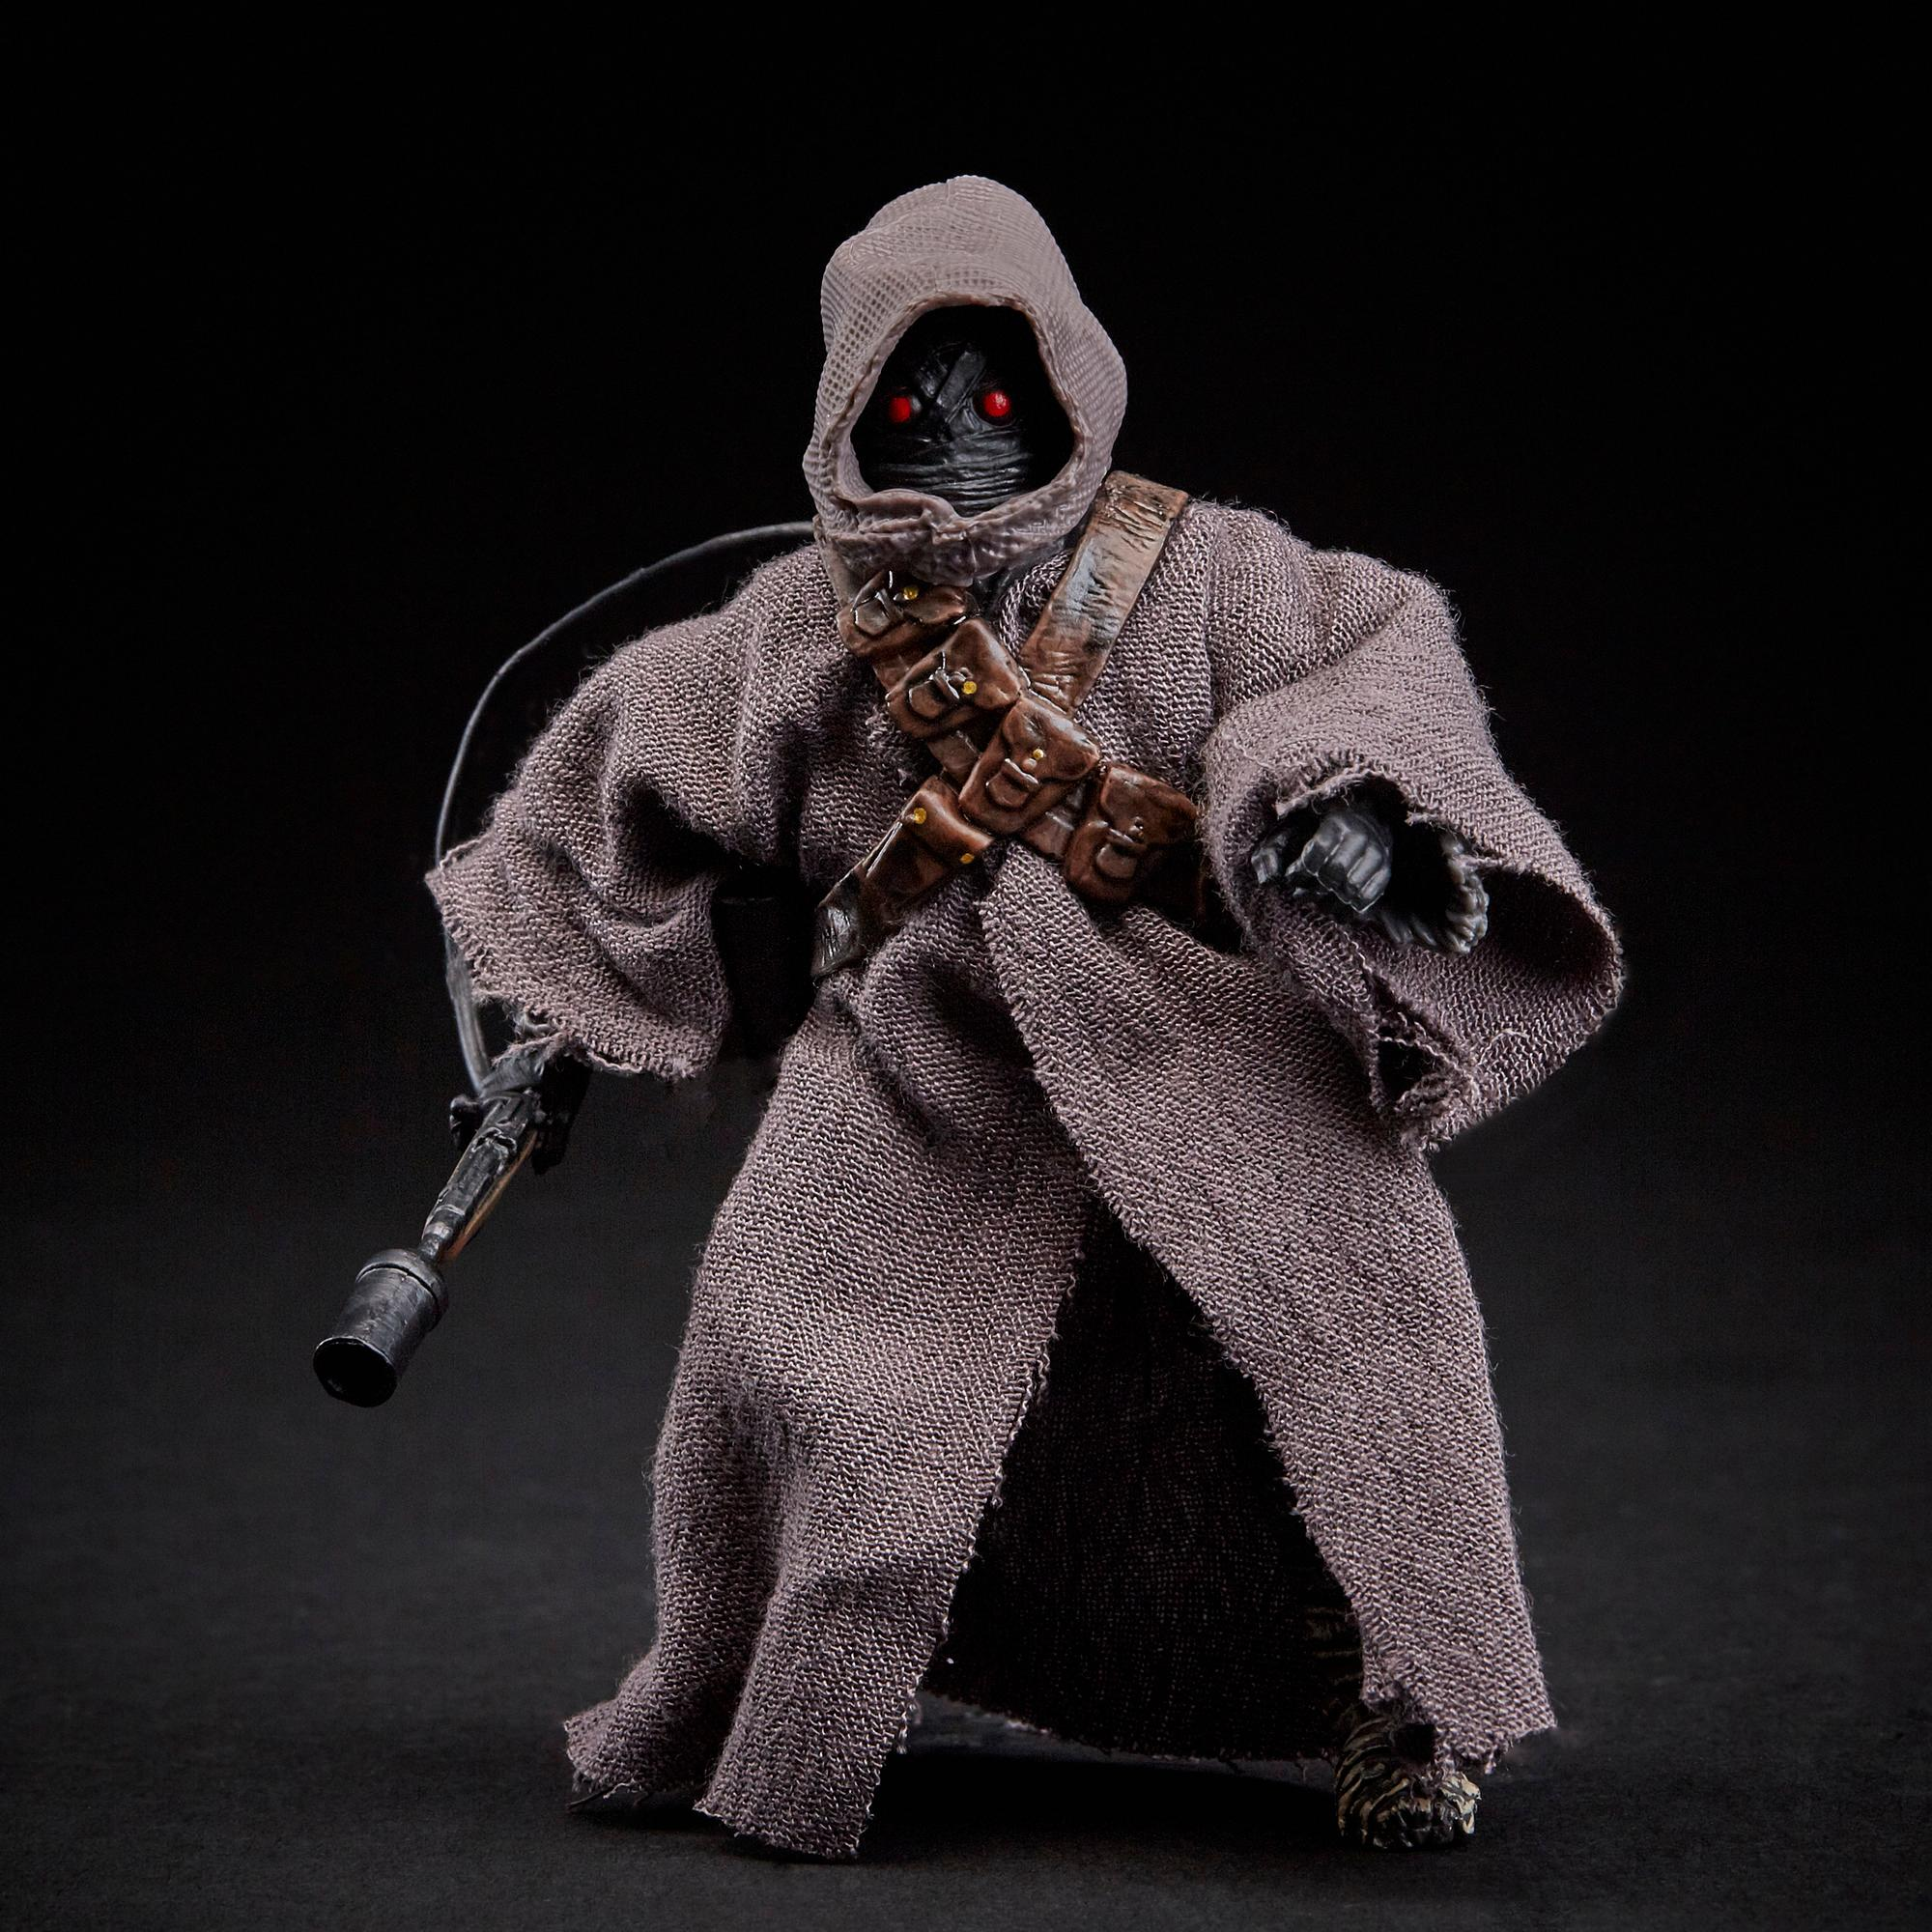 """Details about  /Star Wars The Black Series Offworld Jawa Toy 6/"""" Scale The Mandalorian Collectibl"""